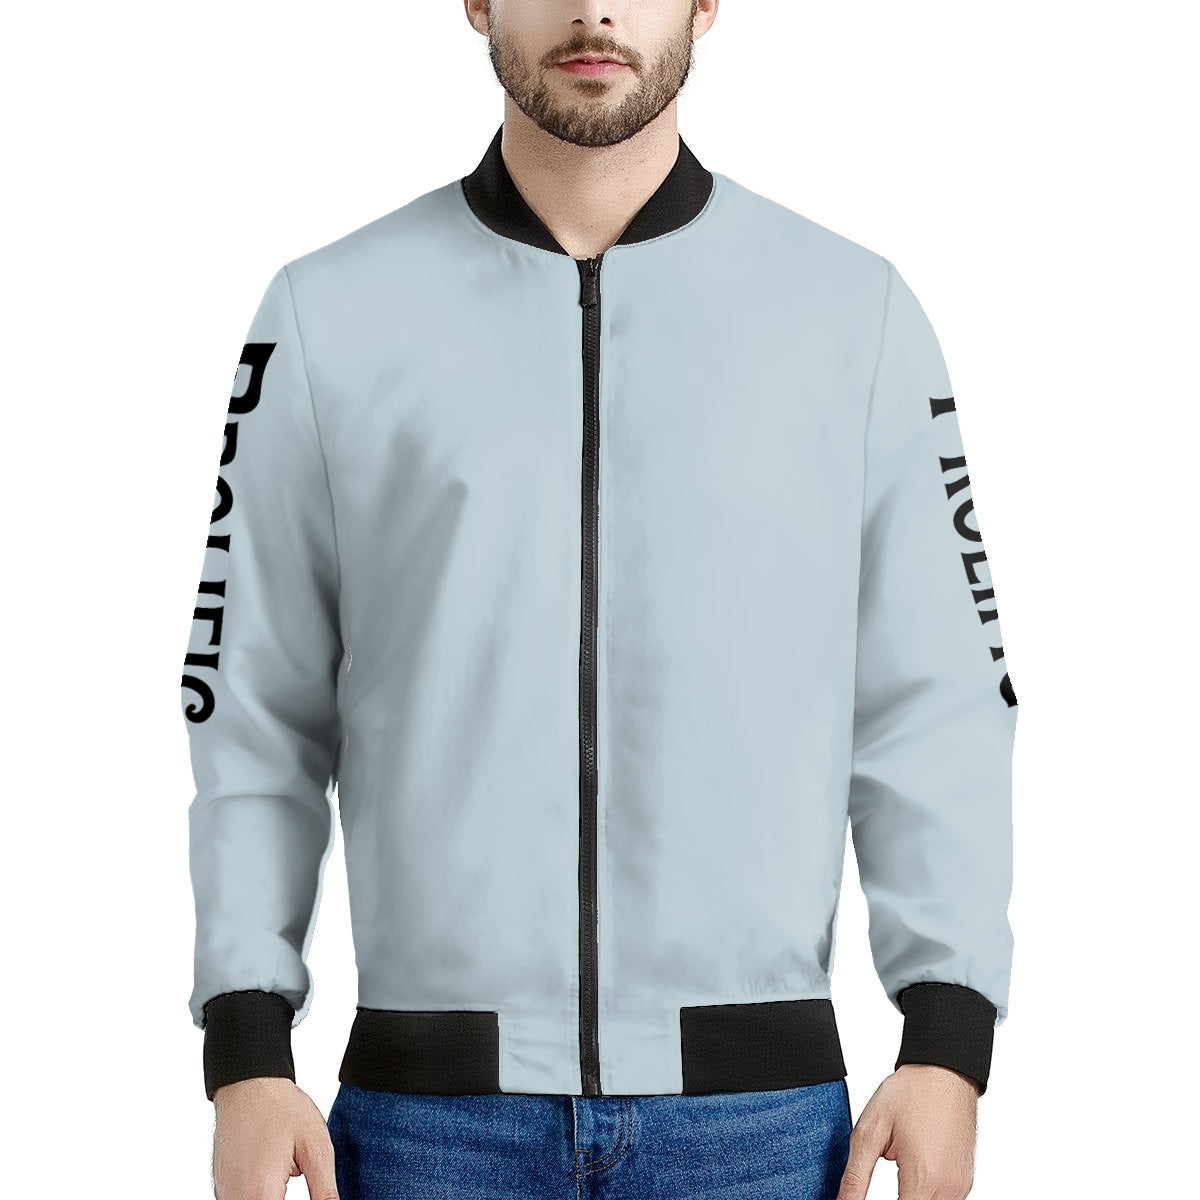 Prolific Men's Bomber Jacket